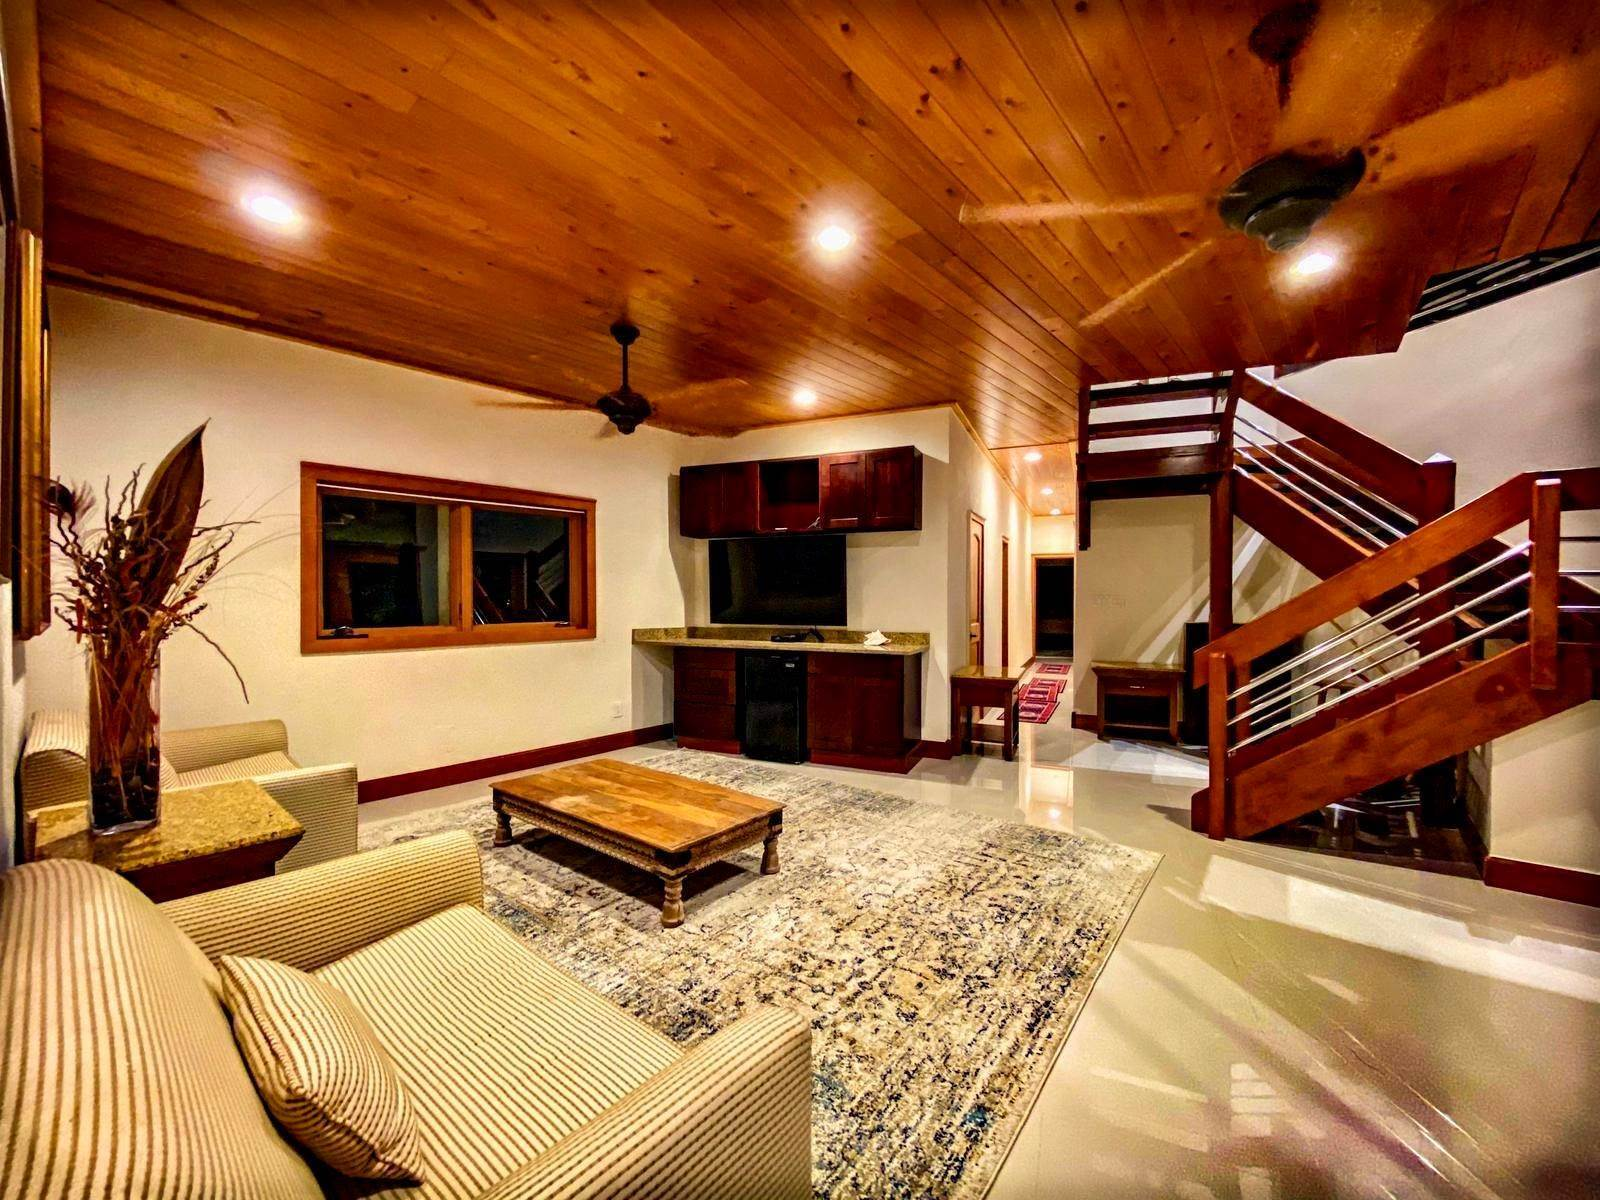 24. Single Family Homes for Sale at C-2-H & C- Lovenlund GNS St Thomas, Virgin Islands 00802 United States Virgin Islands